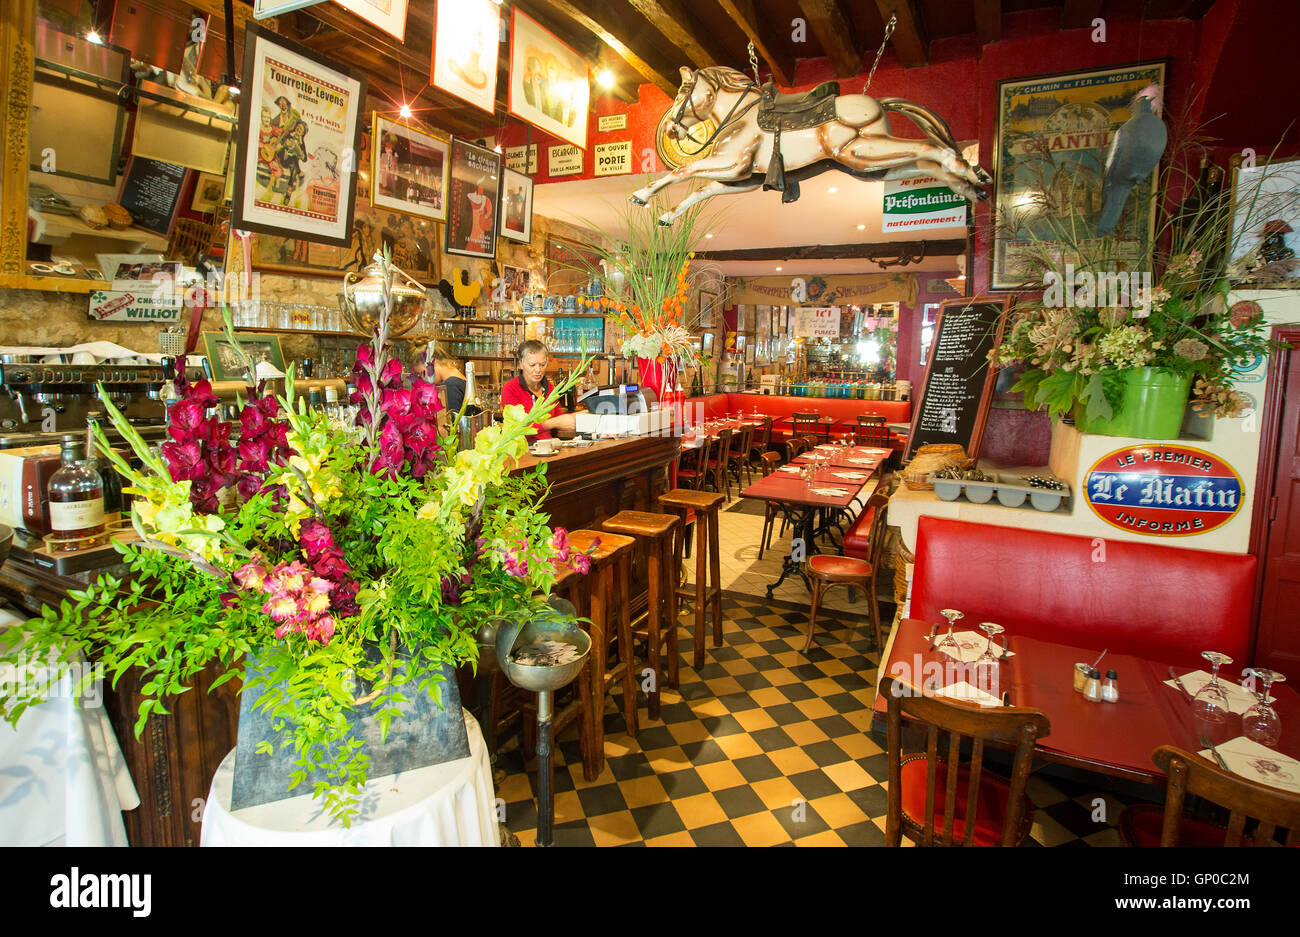 Interior of French brasserie - Stock Image